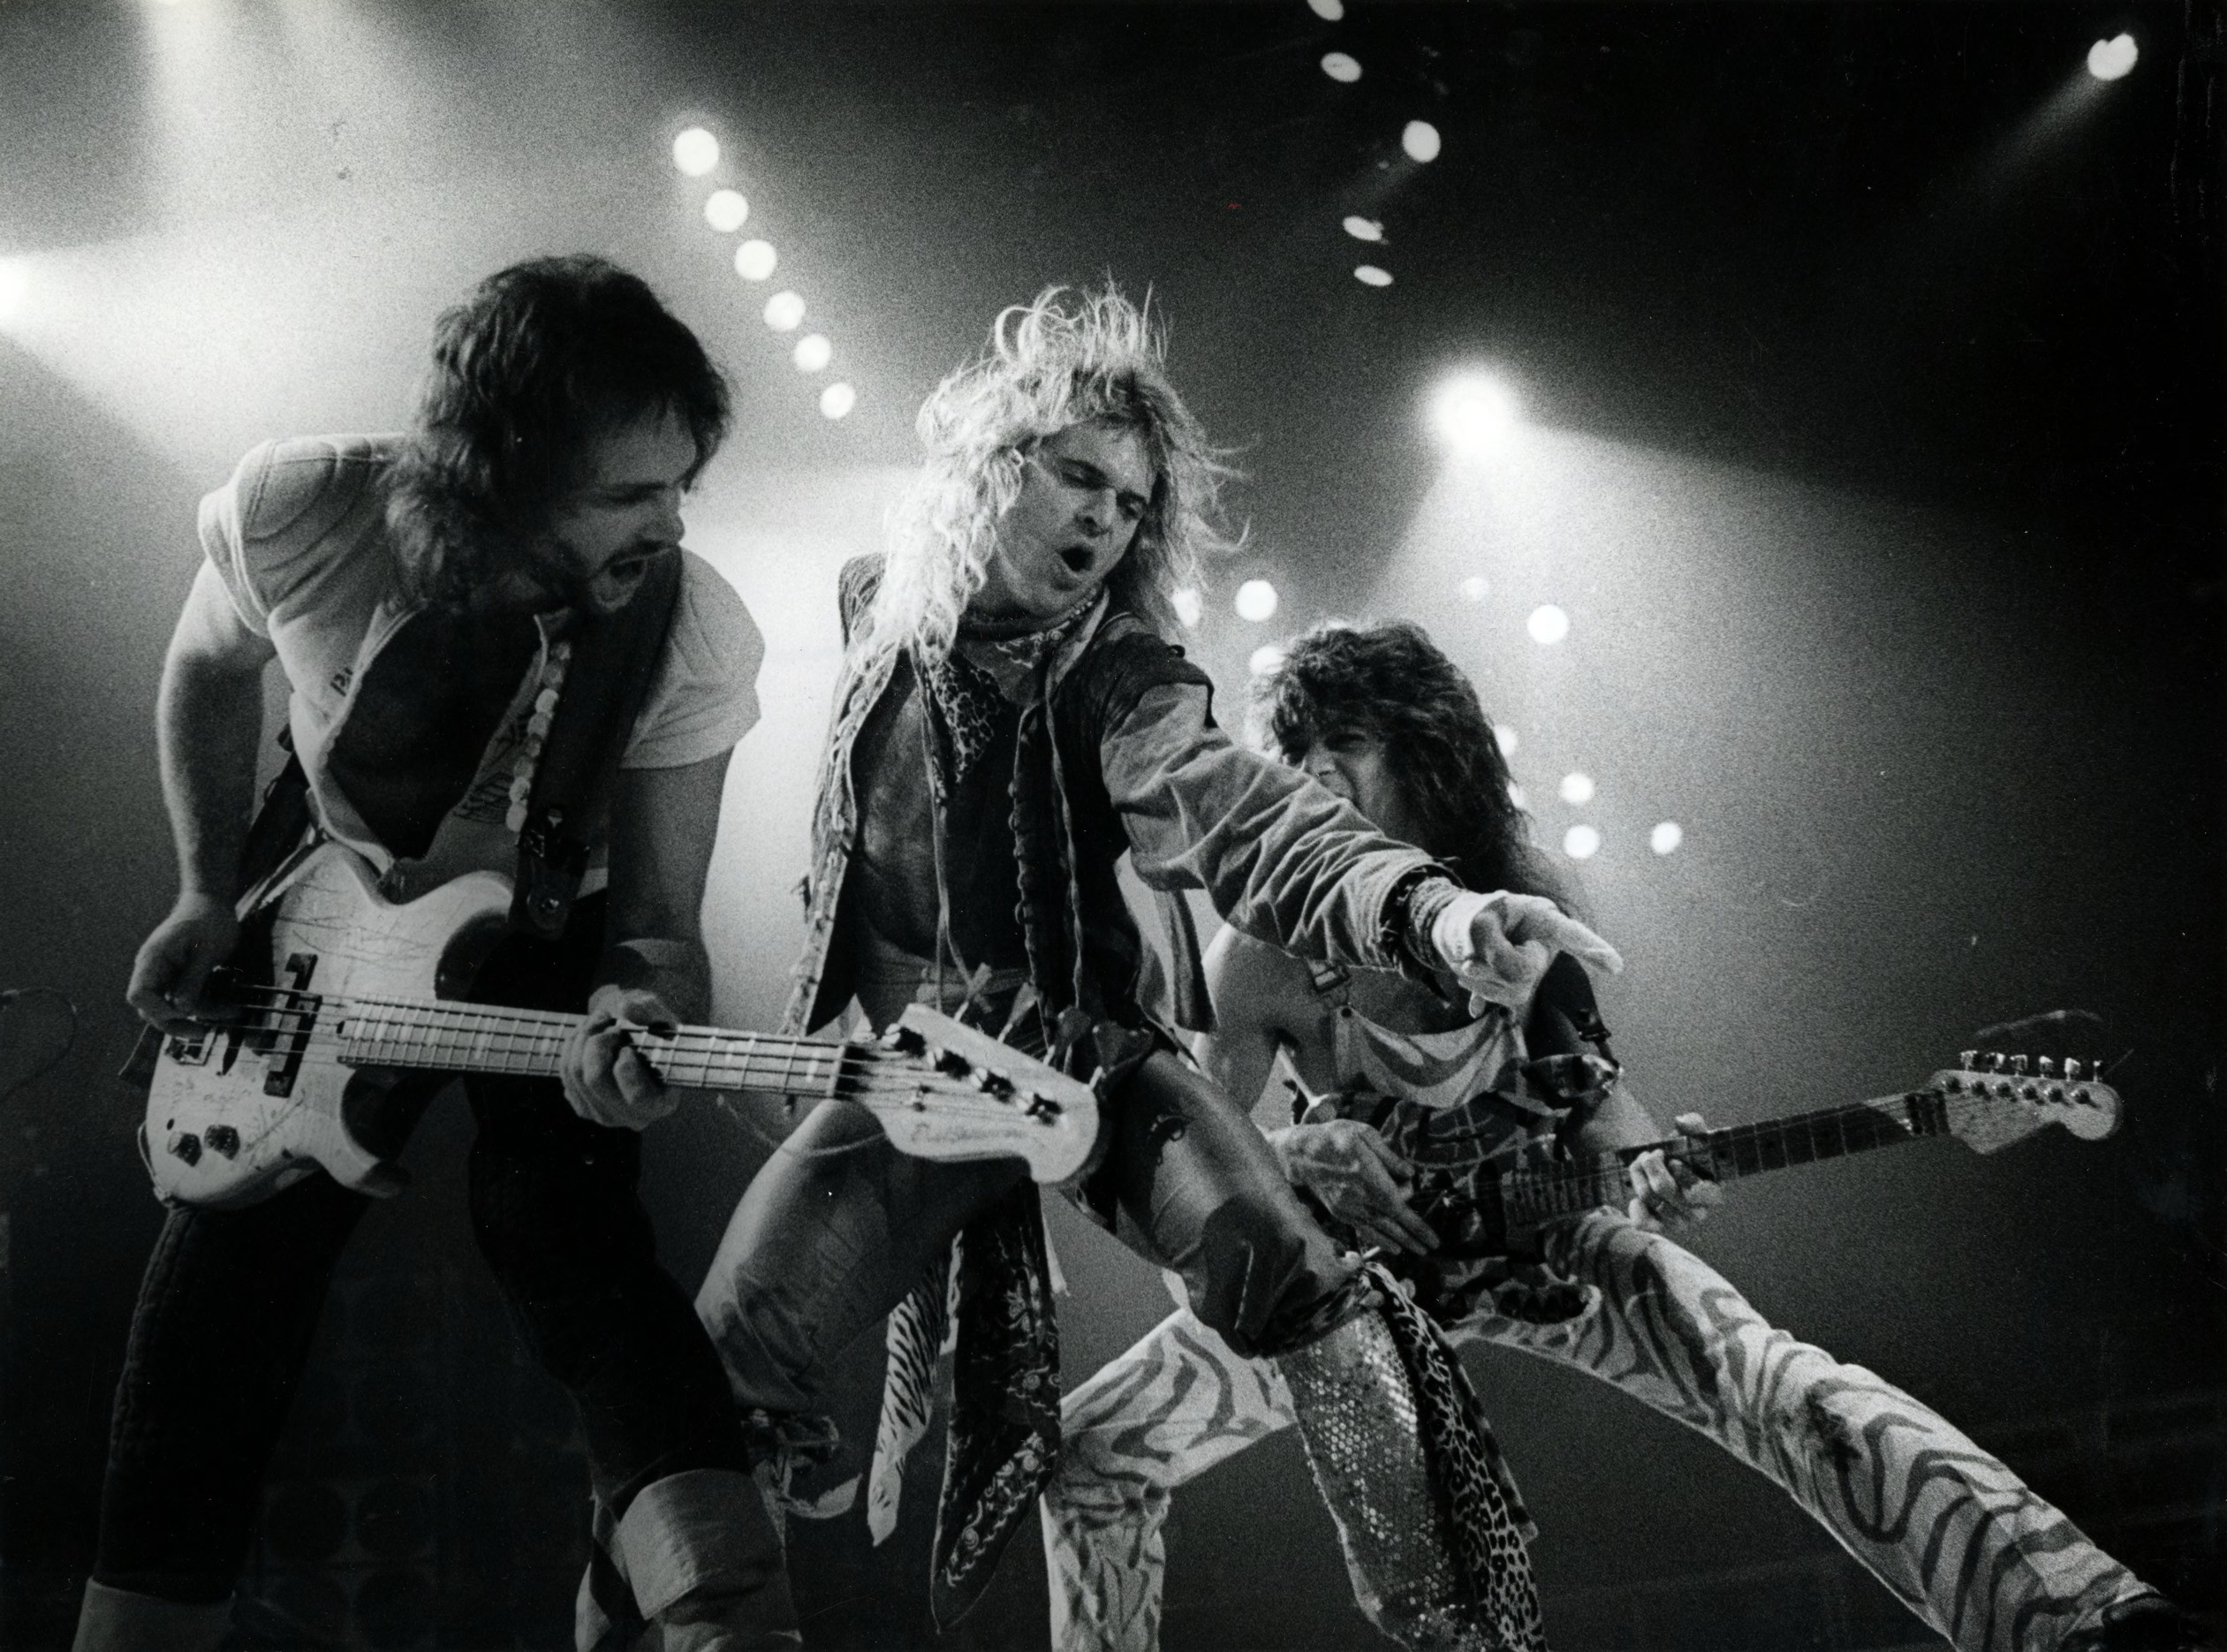 Van halen wallpaper 59 pictures - Van halen hd wallpaper ...